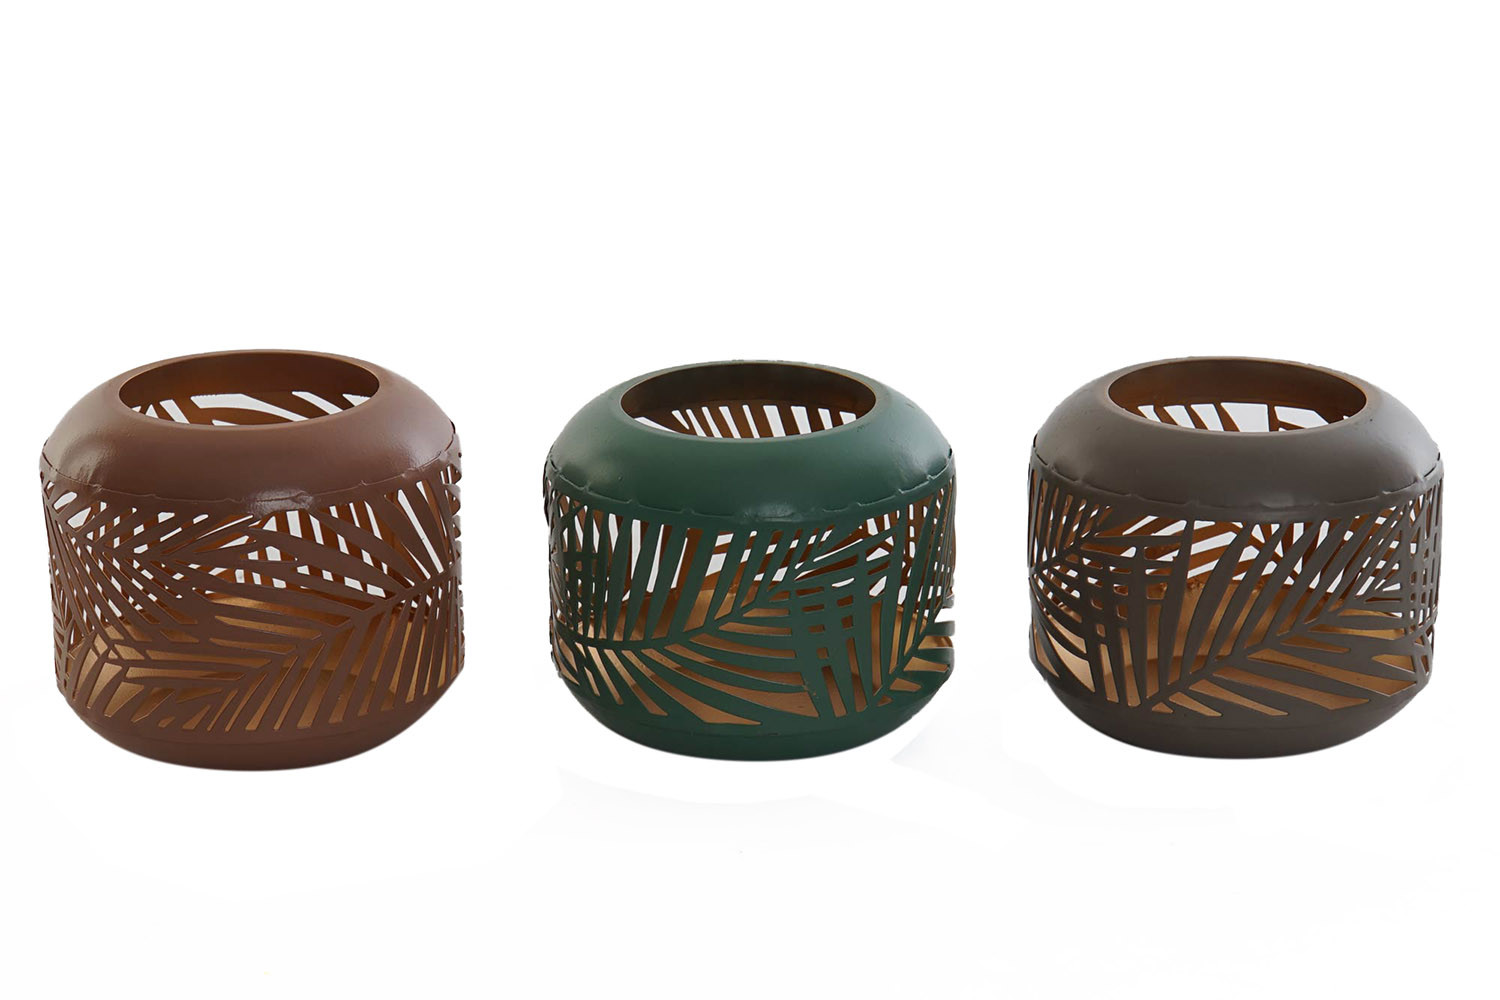 Candle holders Small Decorative, made of Metal. Original design with Tropical style (9cm X 8cm X 9cm) - Home and More